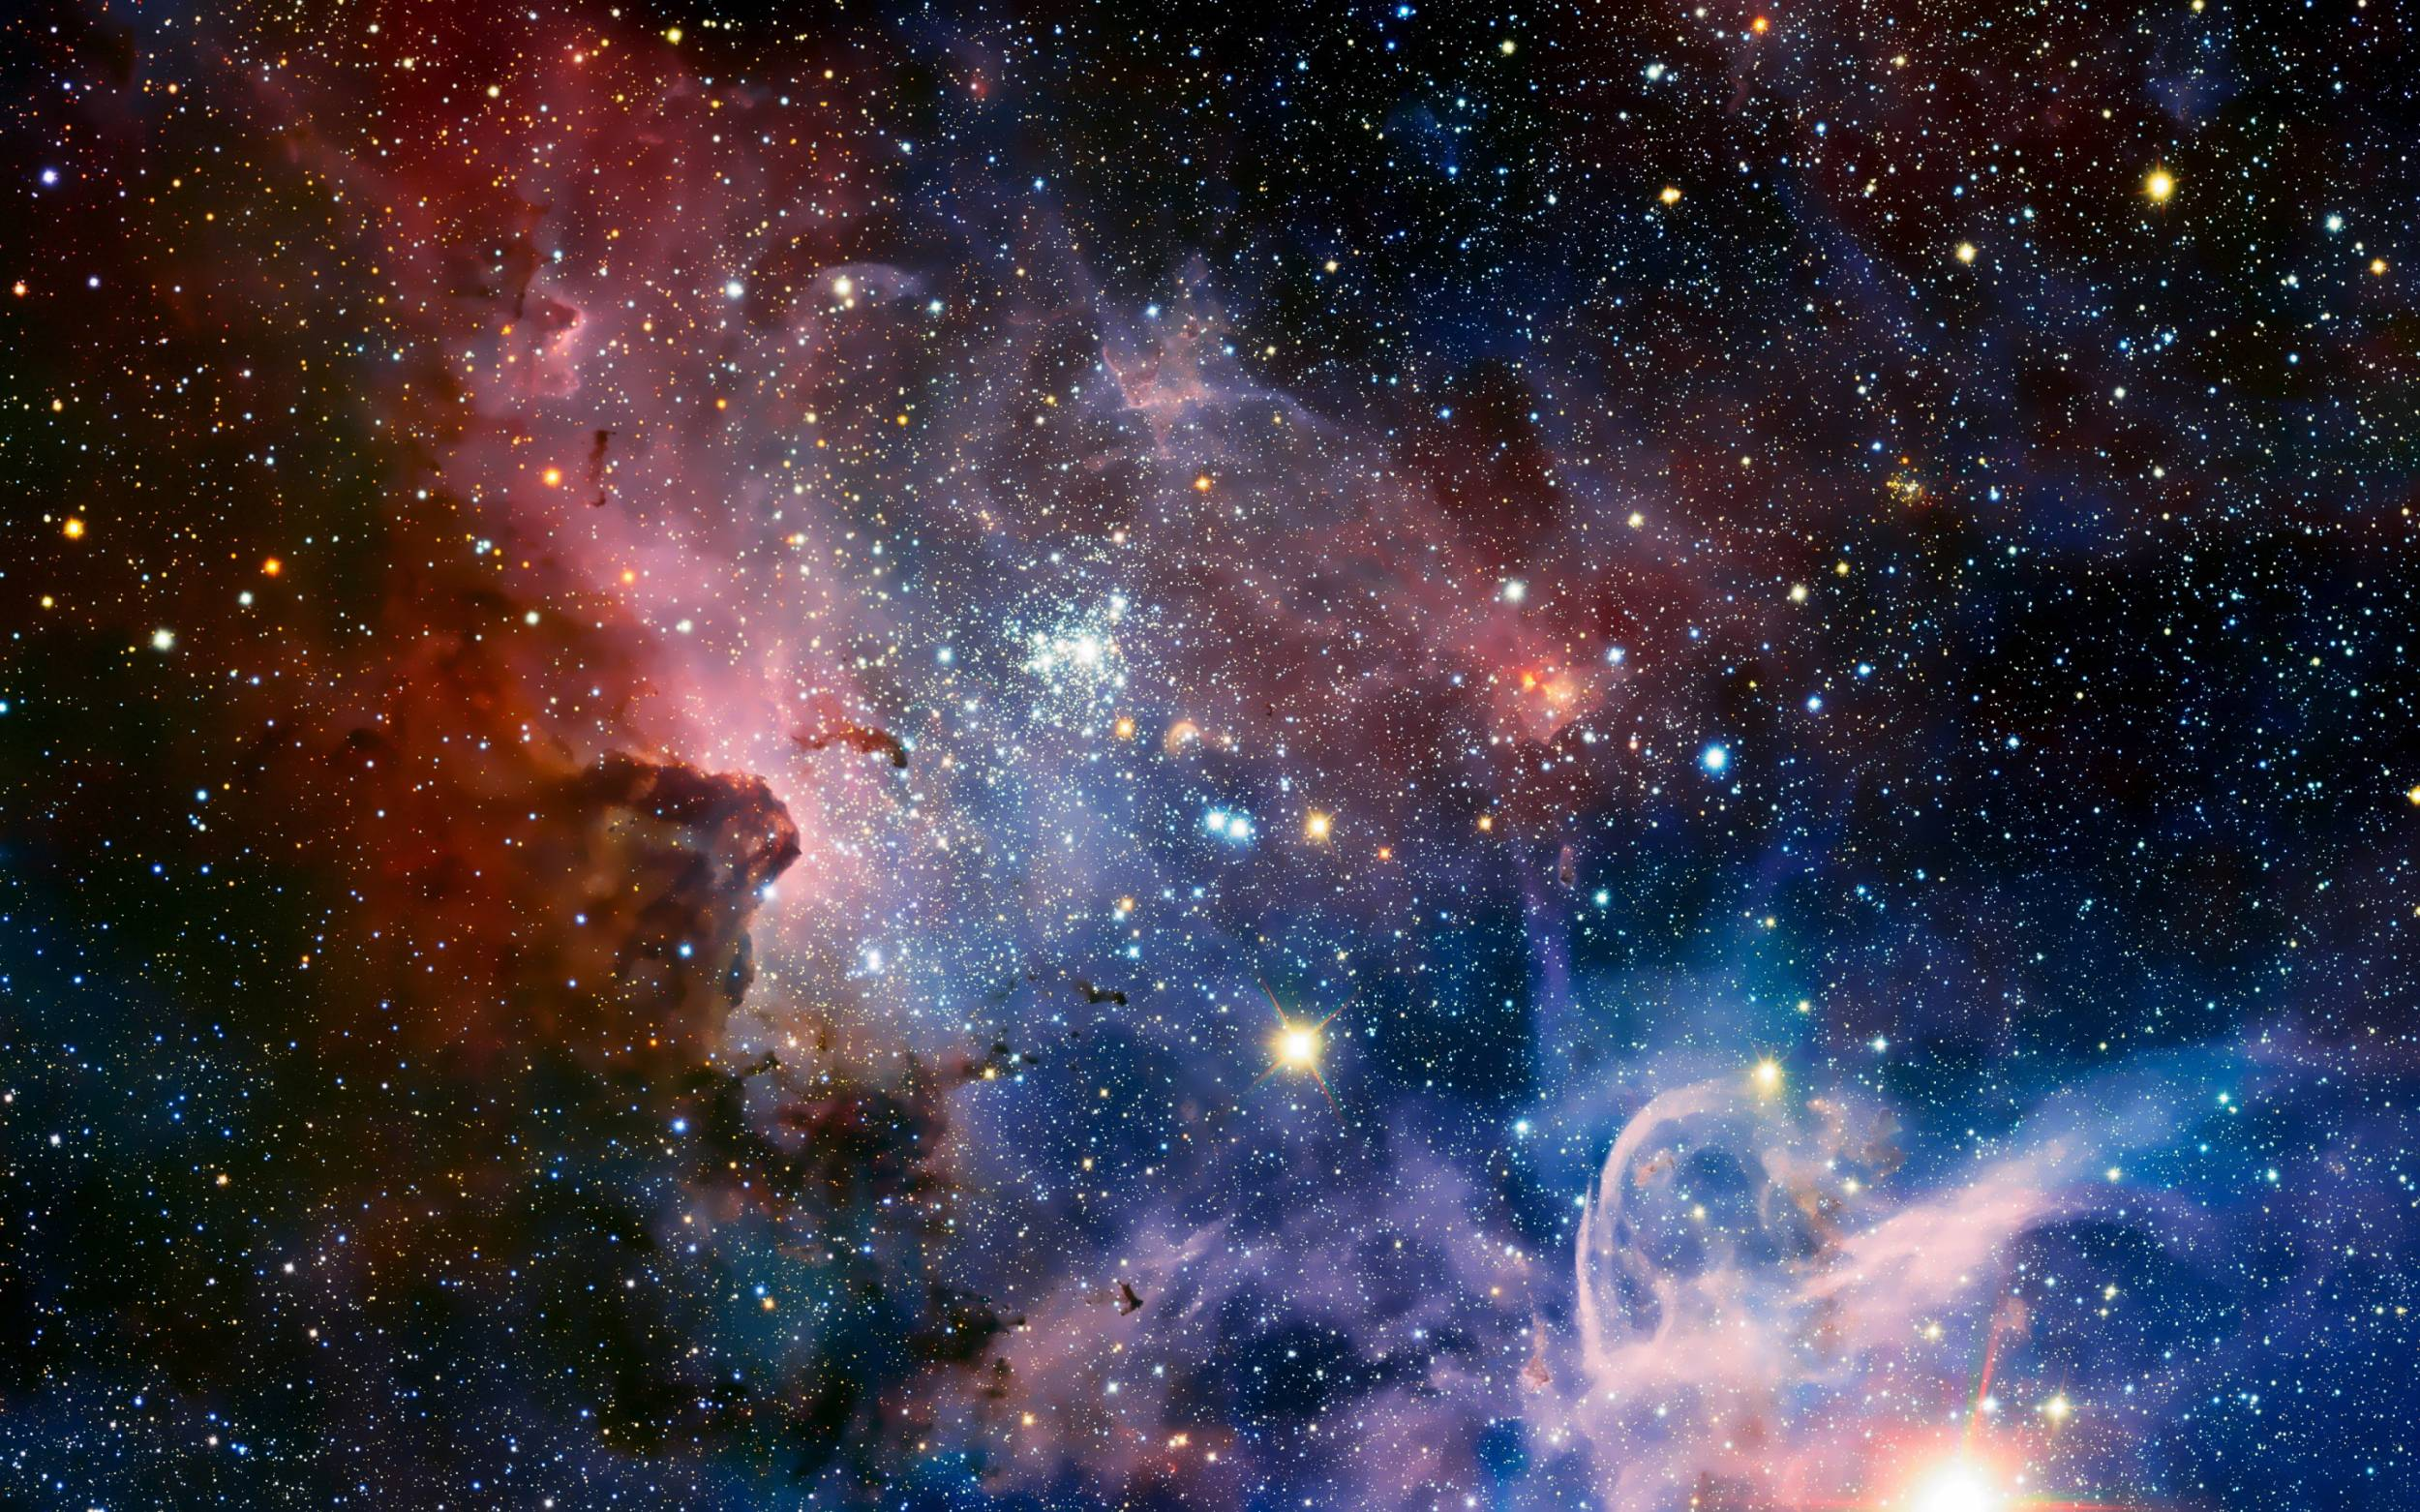 4k Ultra Hd Space Wallpapers Top Free 4k Ultra Hd Space Backgrounds Wallpaperaccess